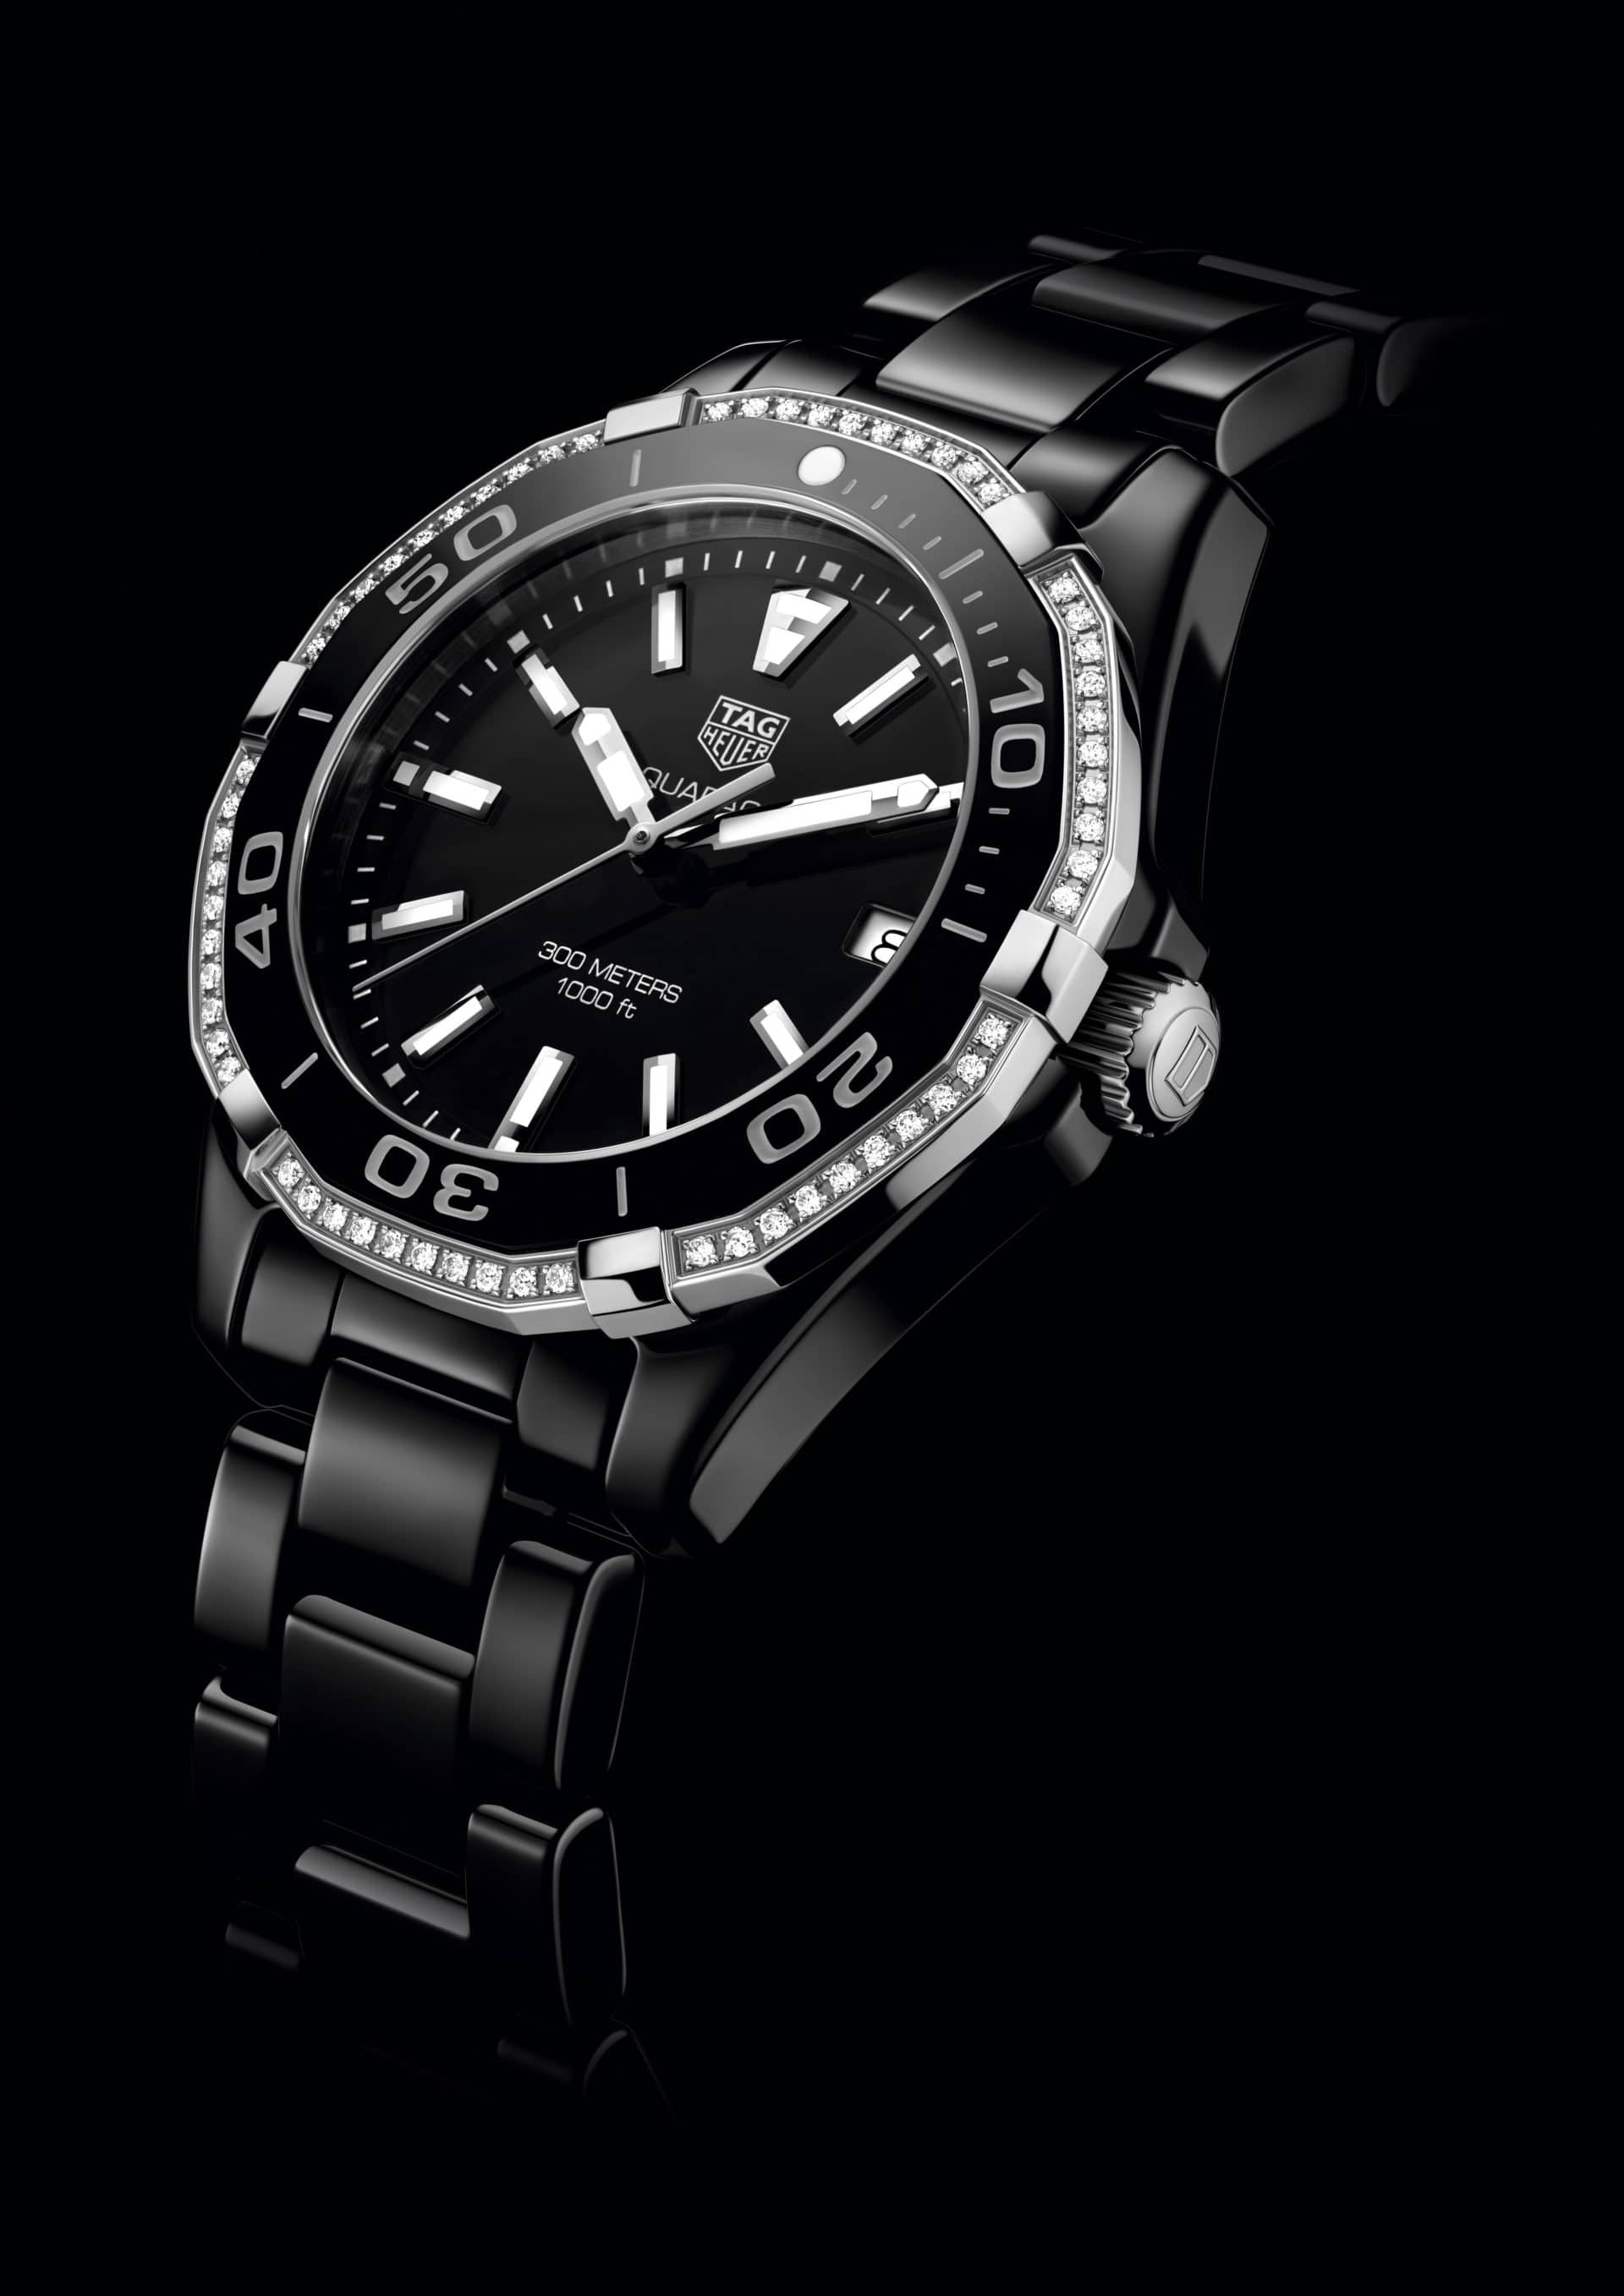 5. AQUARACER 300M LADIES 2016_PHOTOS_WAY1395.BH0716 AQRC FULL BLACK CERAMIC DIAMOND BEZEL - PR VIEW 2016